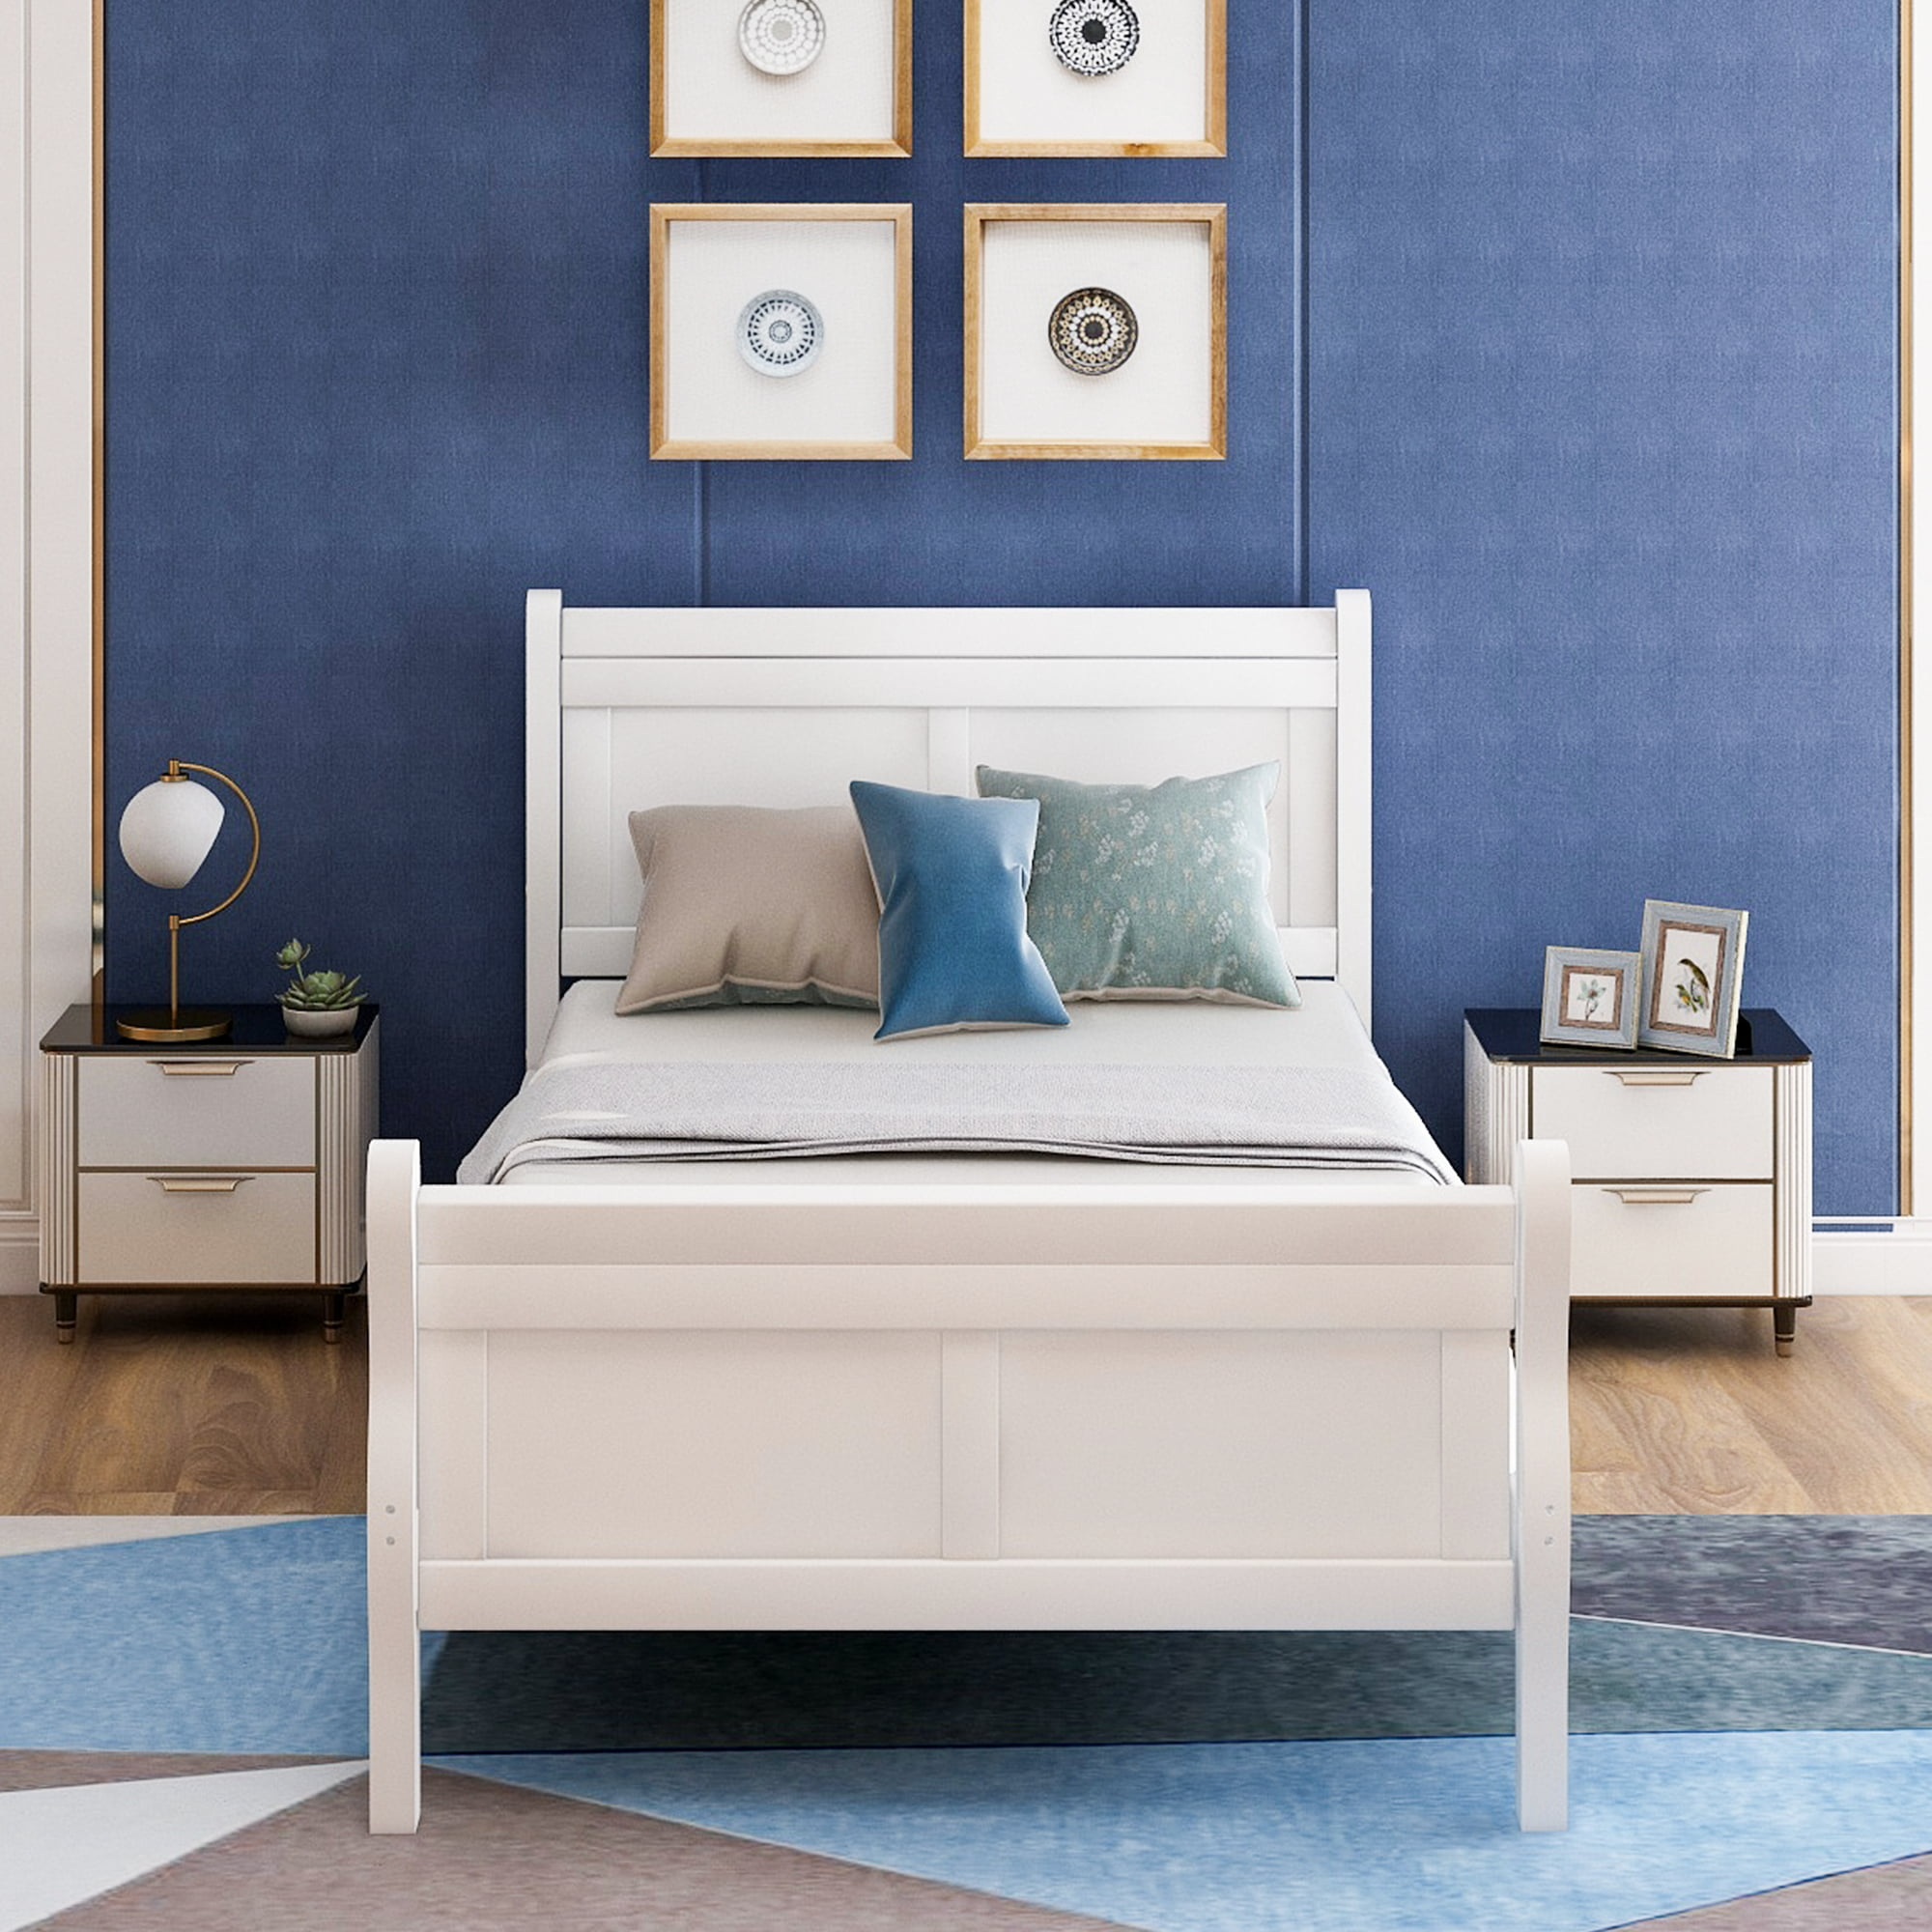 Urhomepro Twin Bed Frame With Headboard Footboard Wood Twin Platform Bed Frame W Strong Wooden Slat No Box Spring Needed For Boys Girls Kids Teens Adults Bedroom Furniture White W9790 Walmart Com Walmart Com